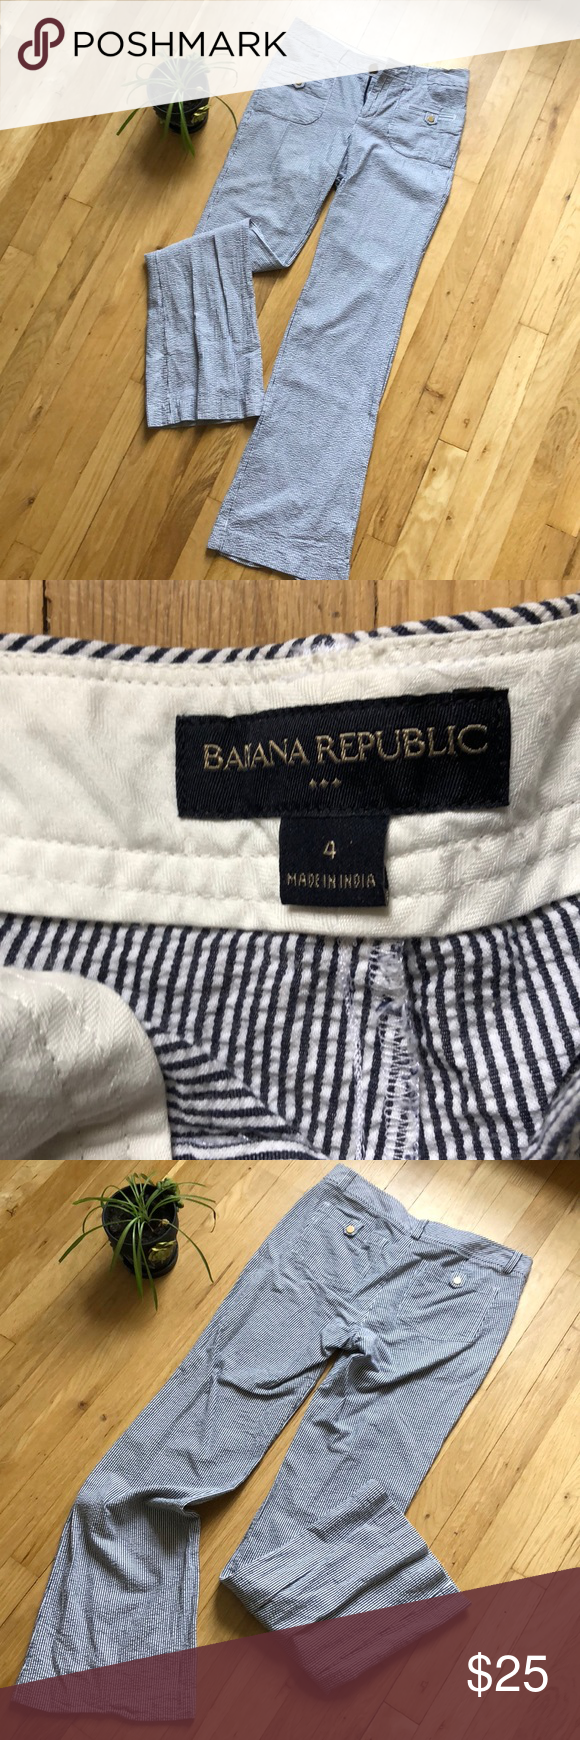 Banana Republic trousers sz 4 Size 4 banana republic trousers. These are super cute for semi casual business attire or a Sunday brunch. Perfect for spring or summer. Blue and white striped. Banana Republic Pants Trousers #businessattiresummer